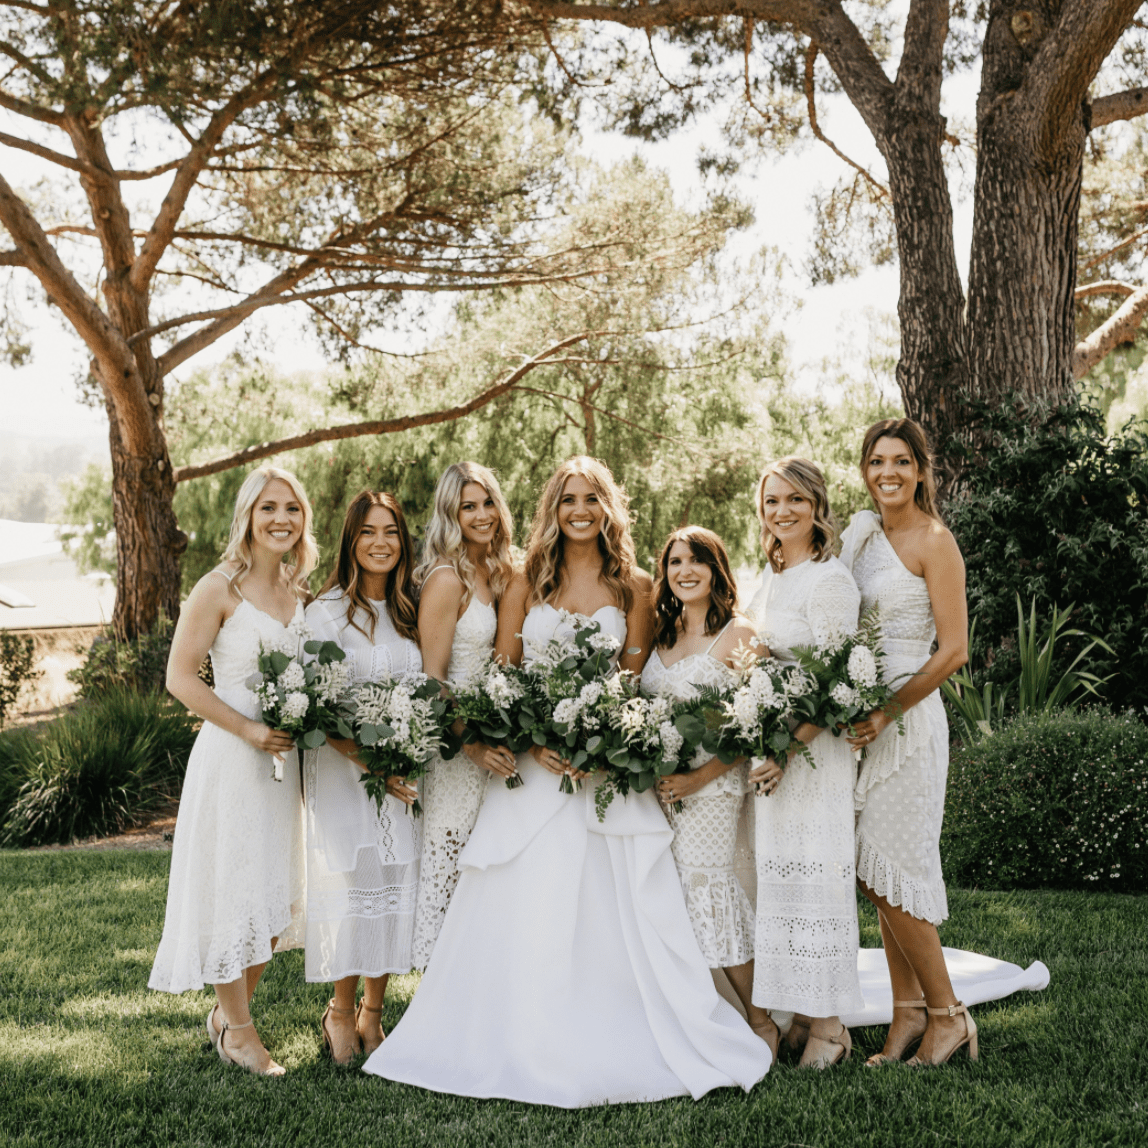 Bride with bridal party in white